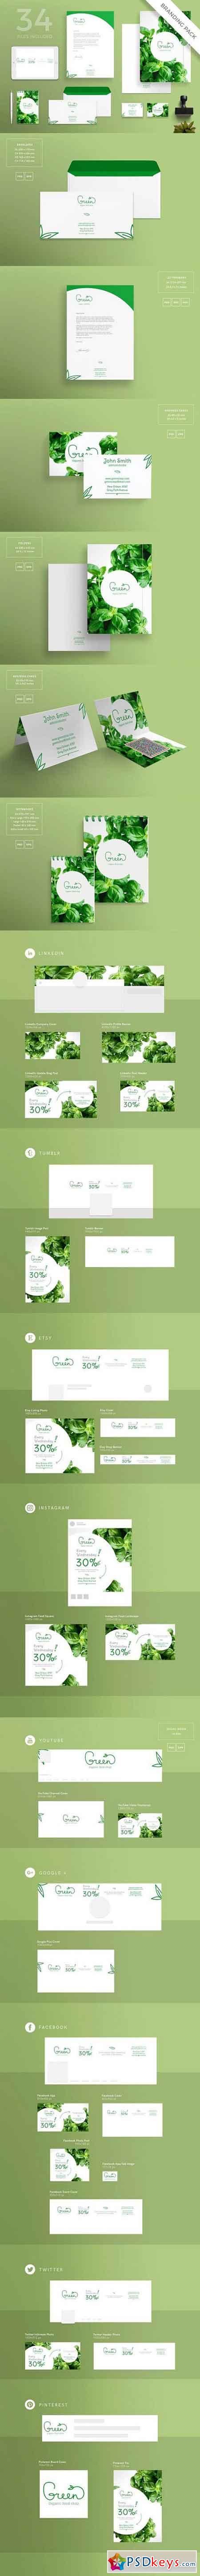 Branding Pack Green Shop 1495537